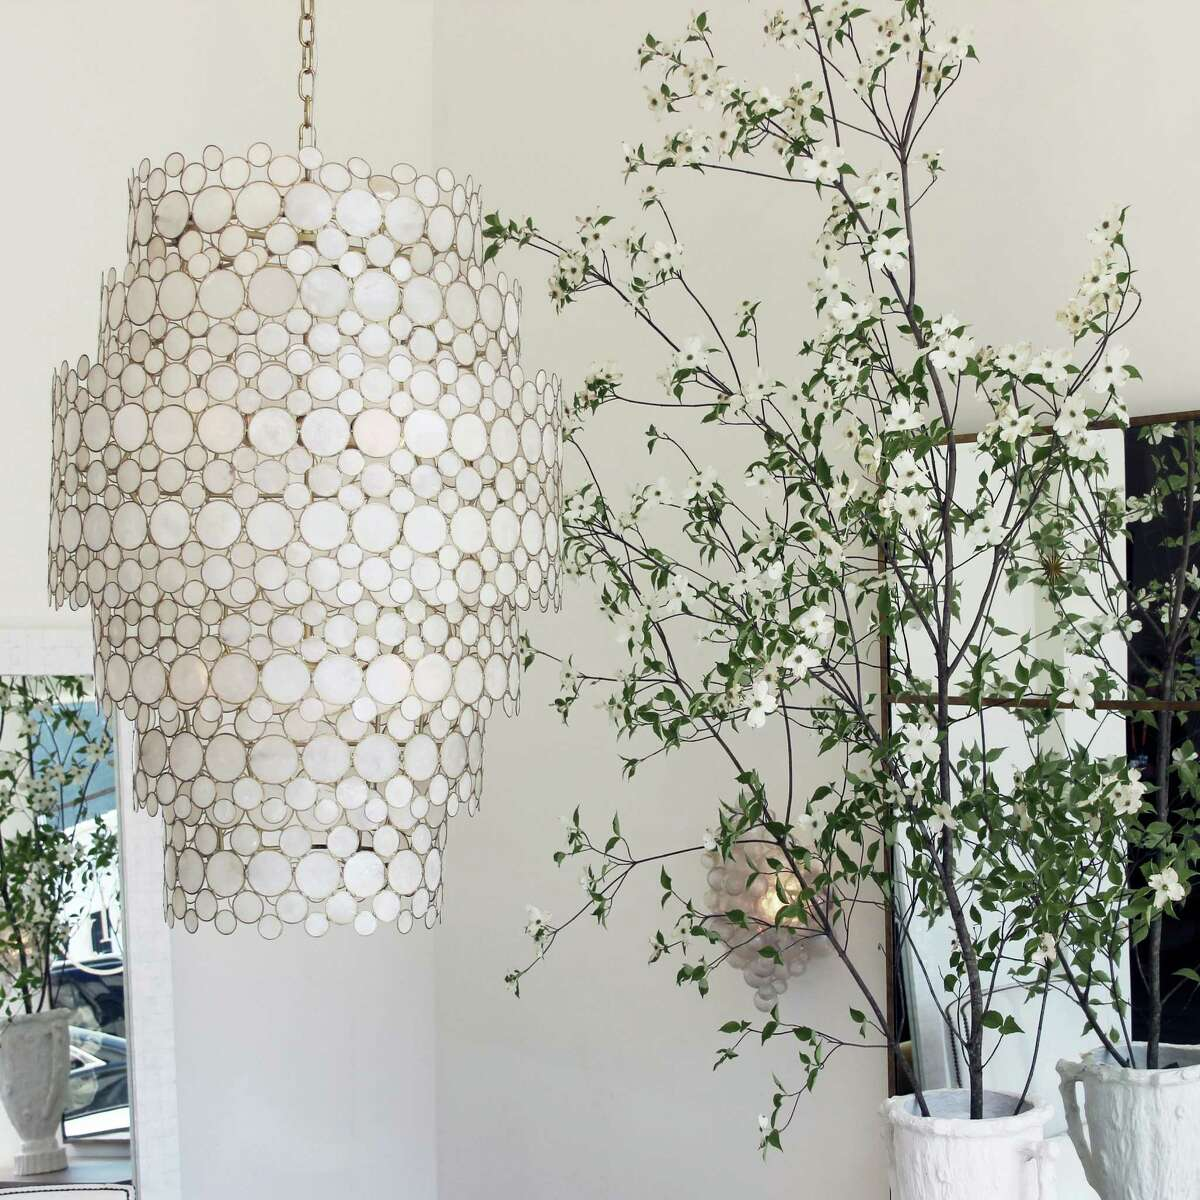 Oly Studio Serena Waterfall Chandelier brings a bit of nature into your home with a brass frame and inlaid Capiz shells.